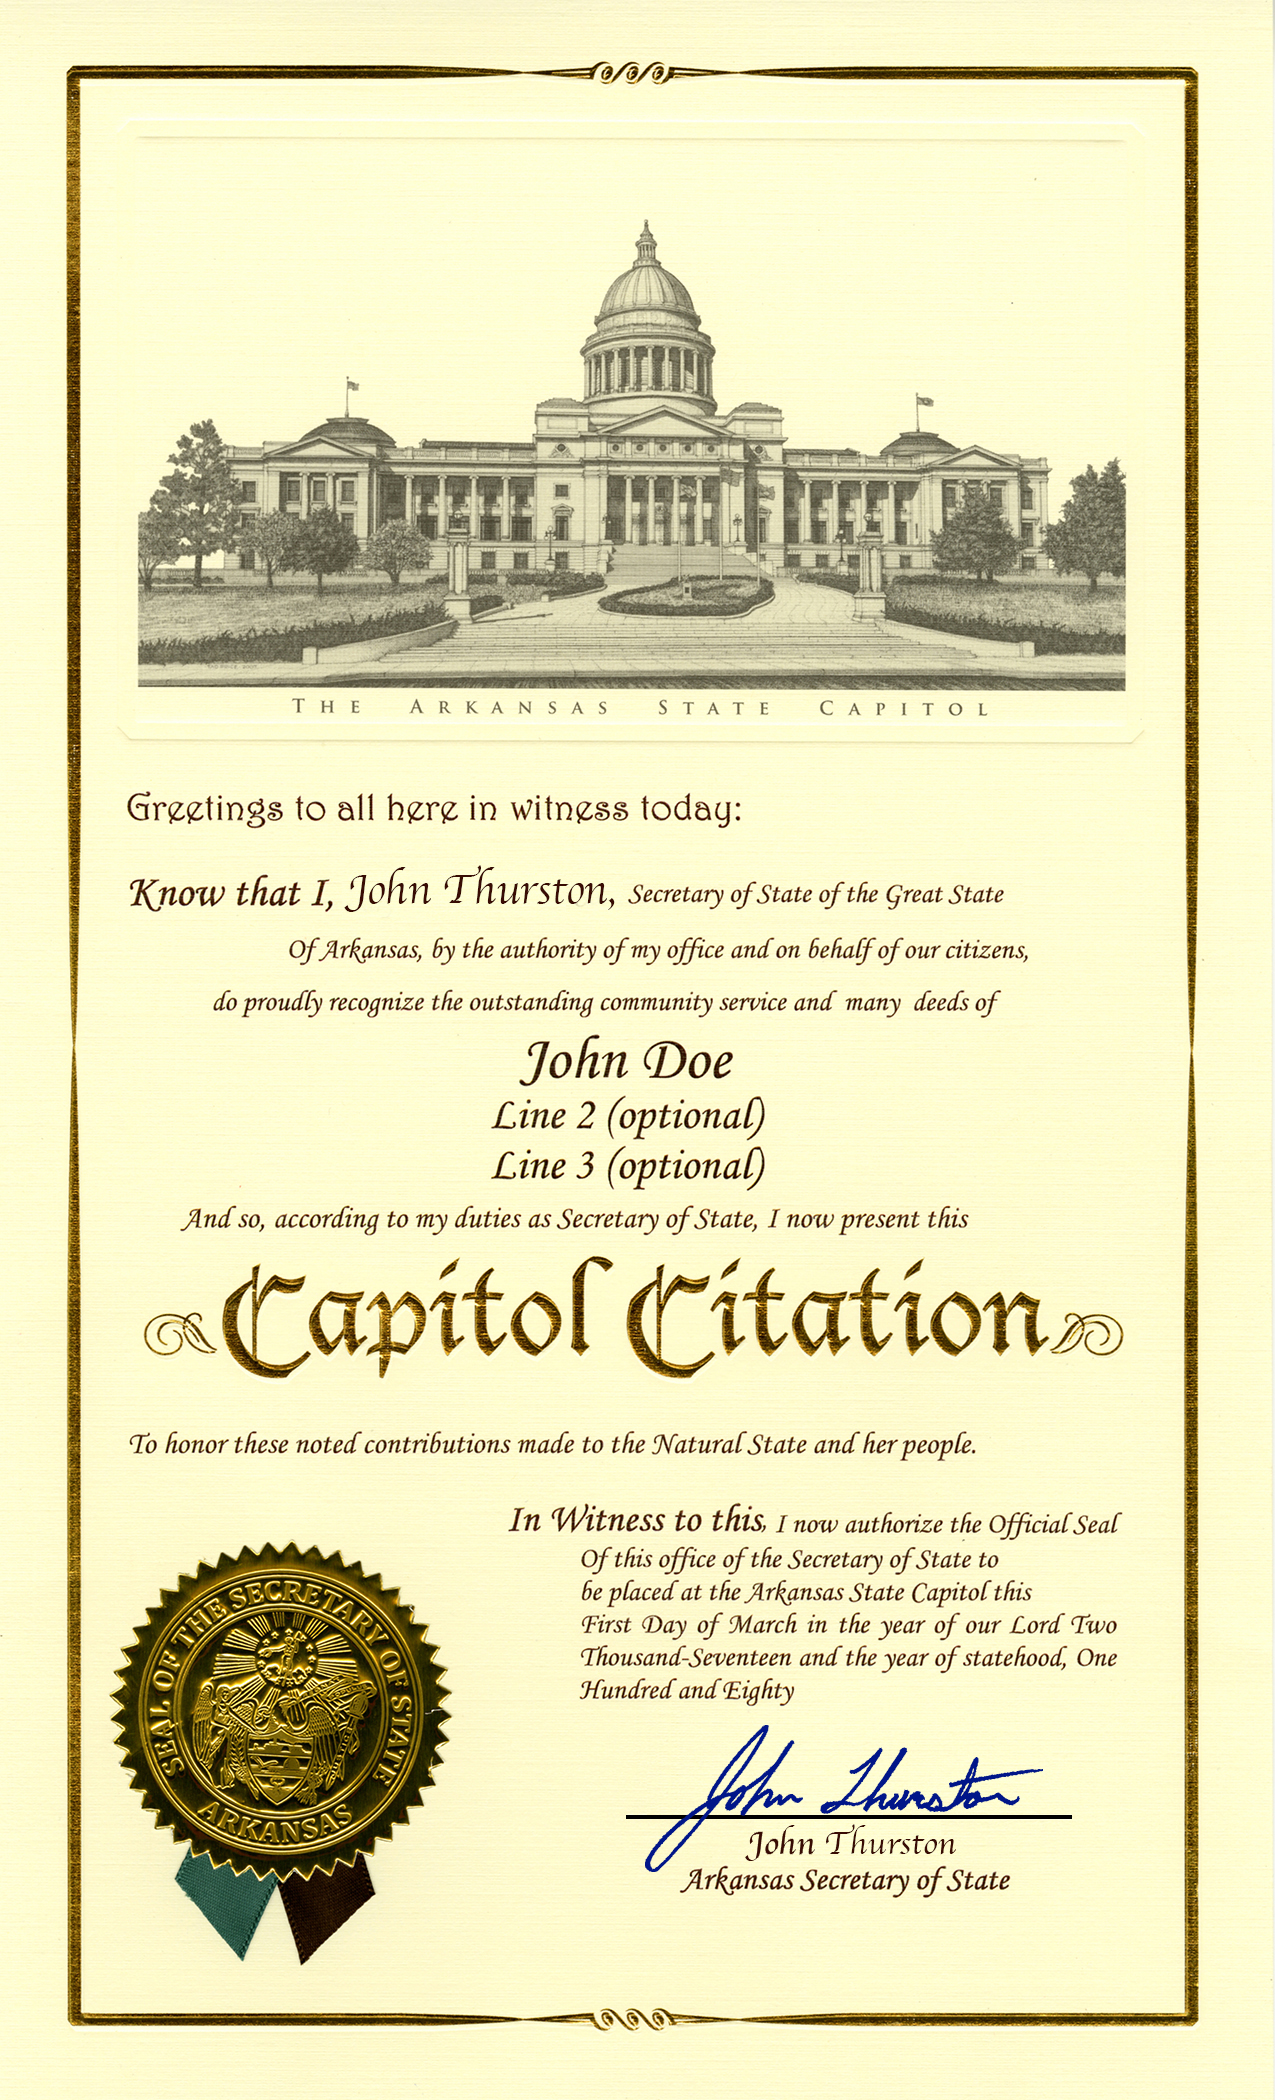 Capitol Citation